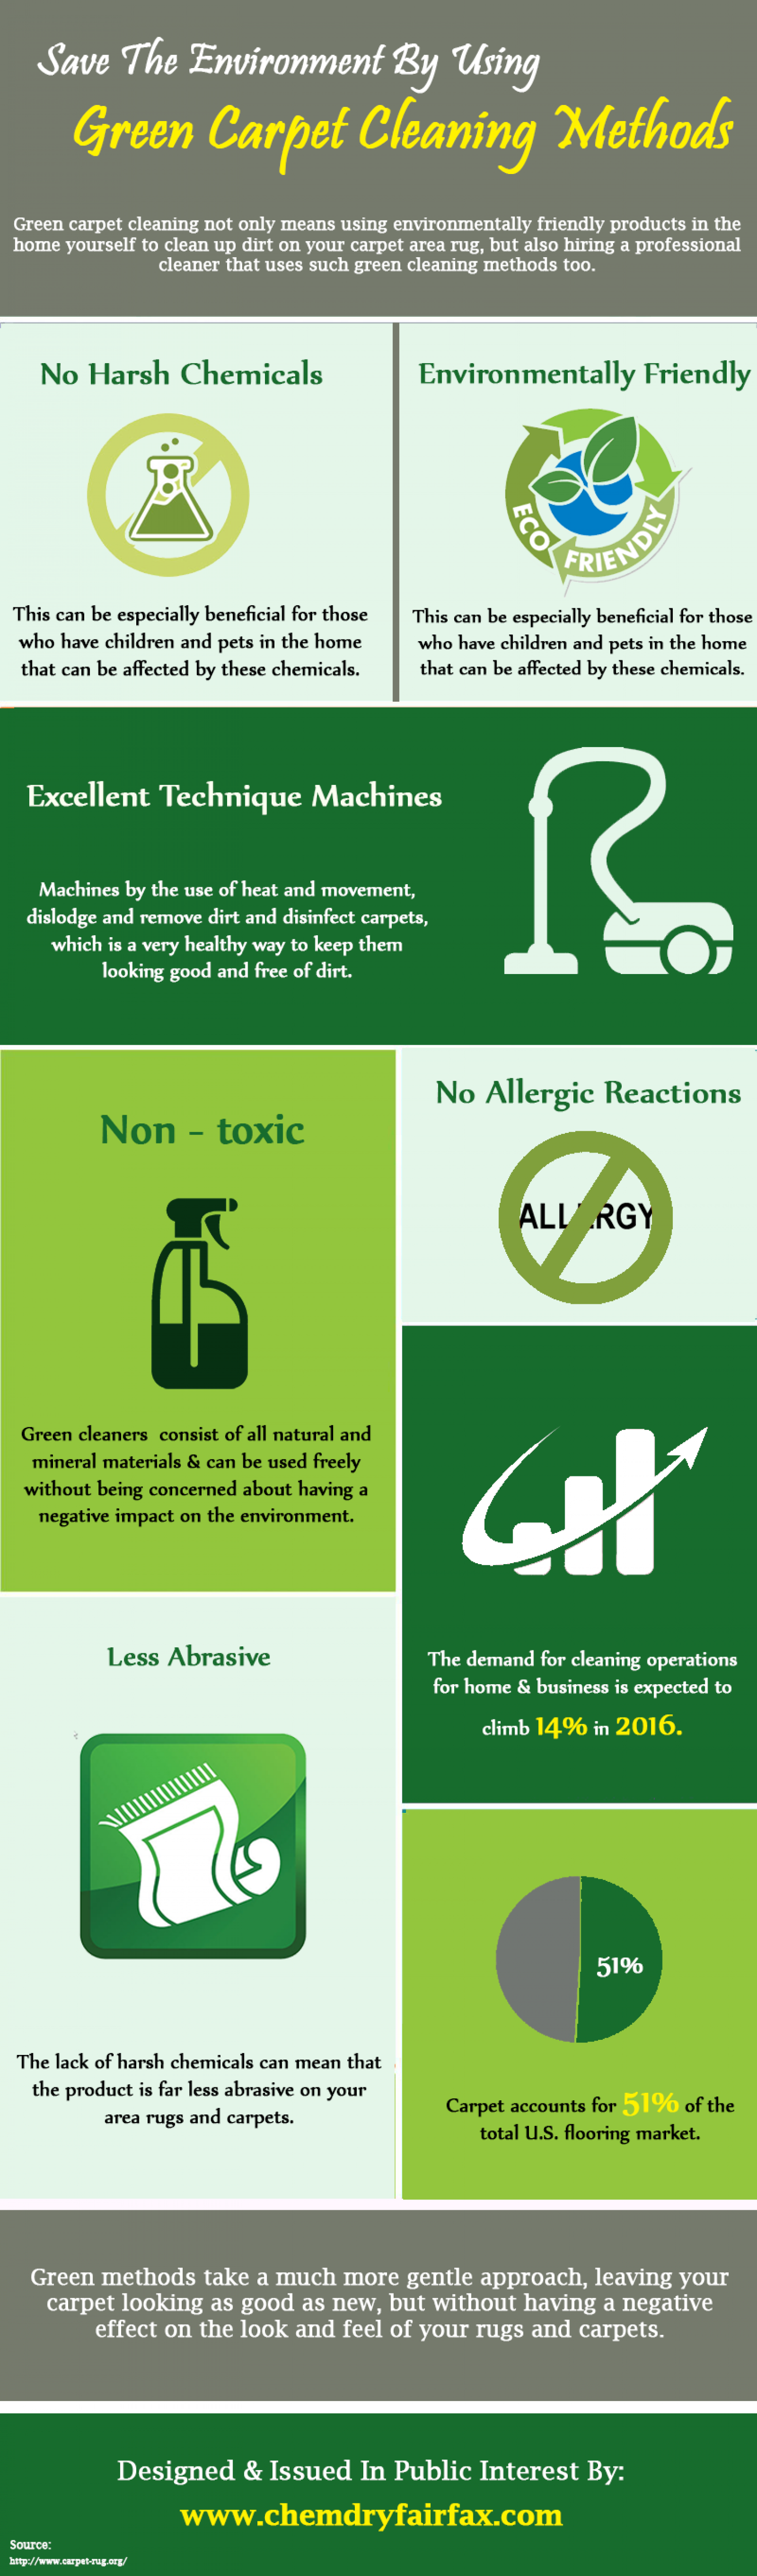 Save the environment by using green carpet cleaning methods visual save the environment by using green carpet cleaning methods infographic solutioingenieria Gallery